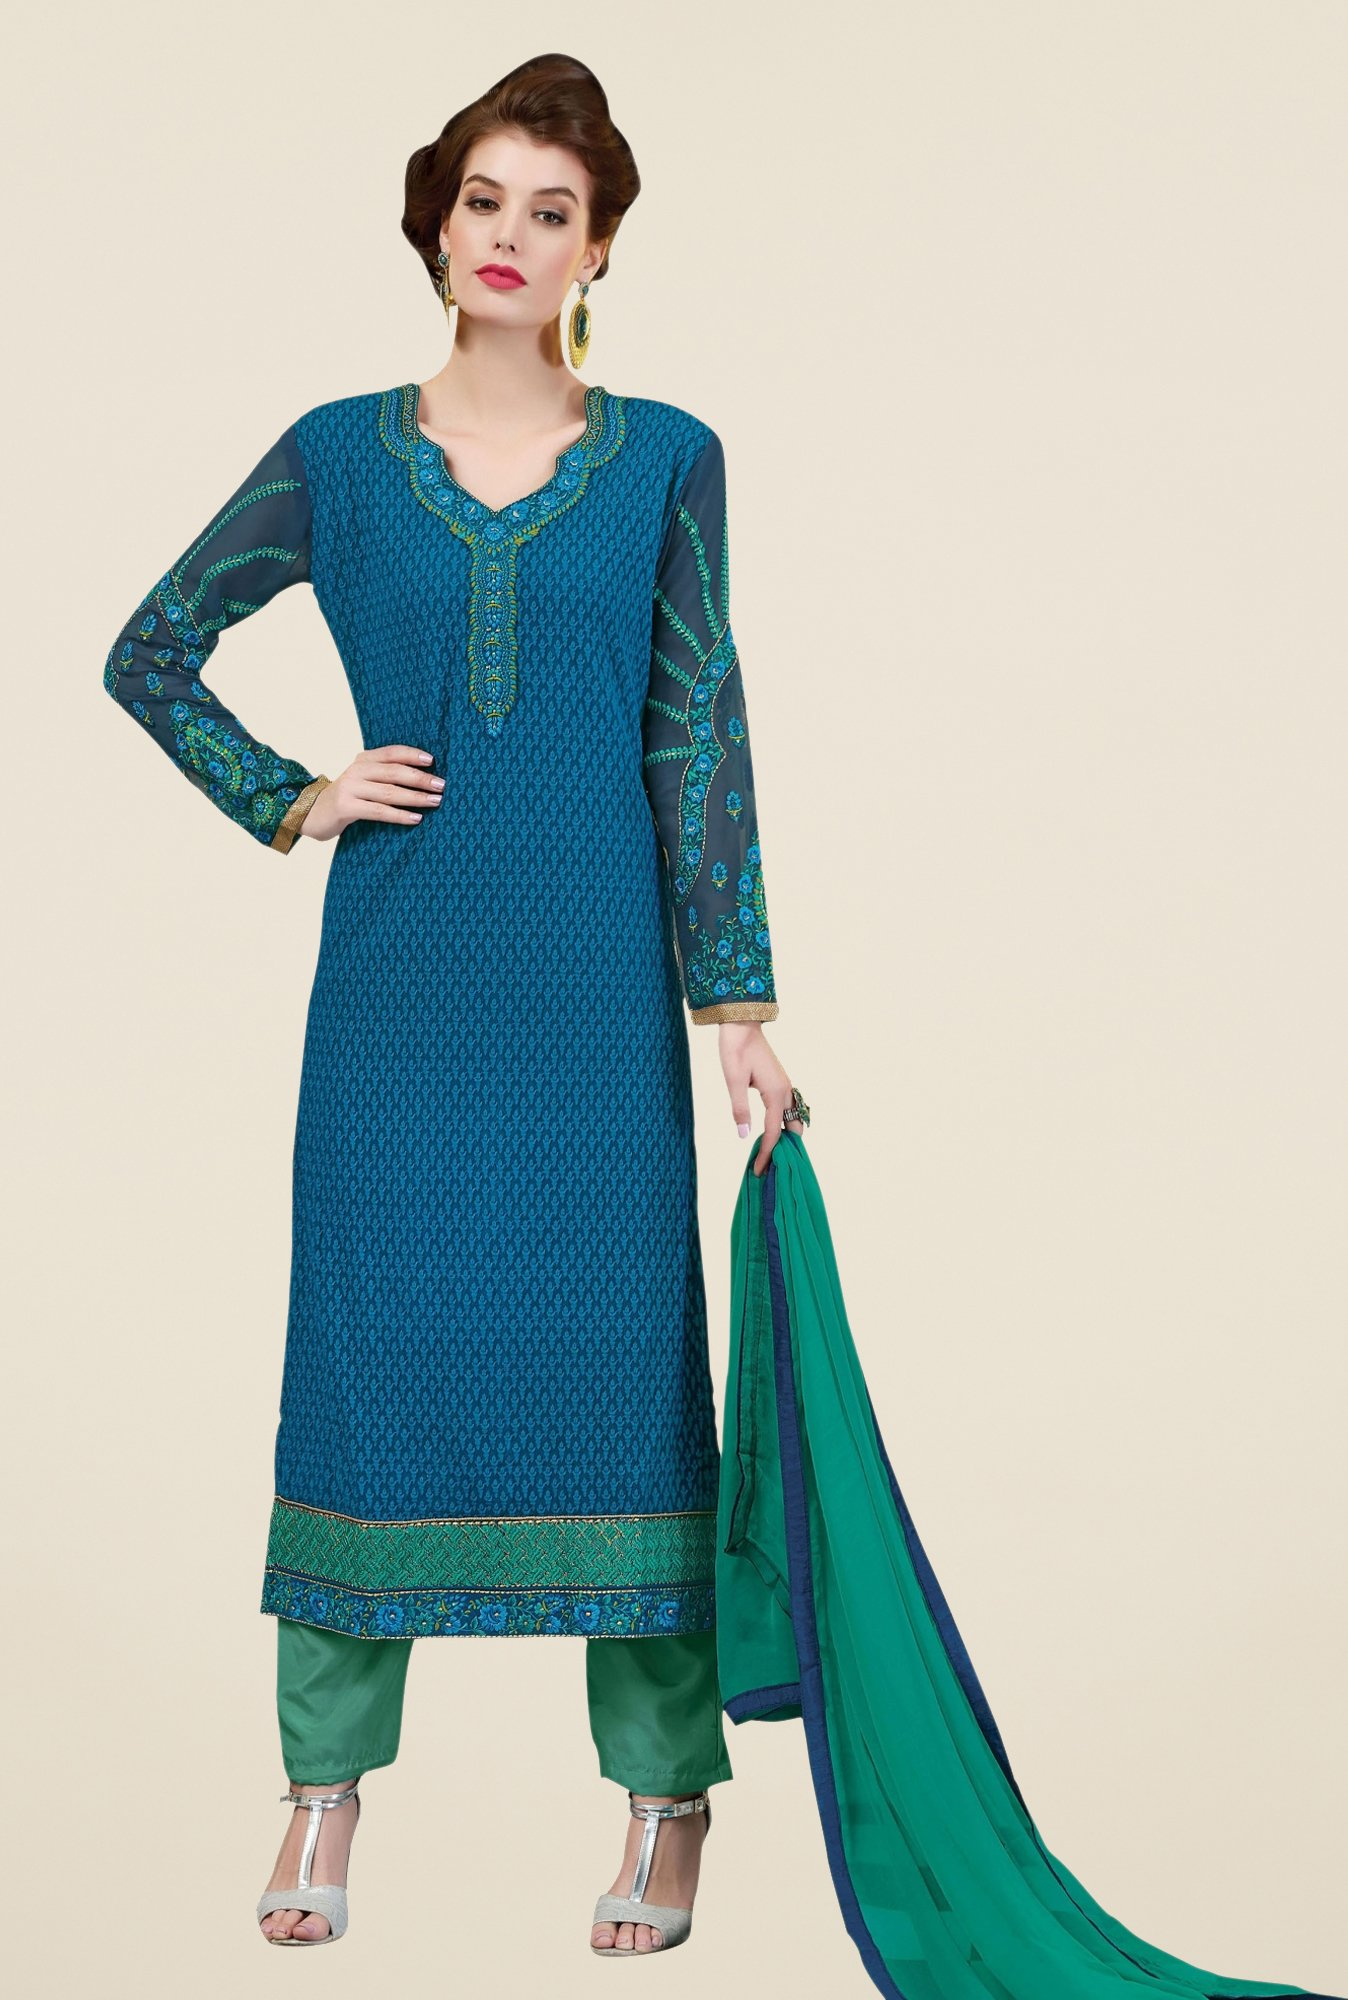 Triveni Striking Blue & Teal Faux Georgette Dress Material